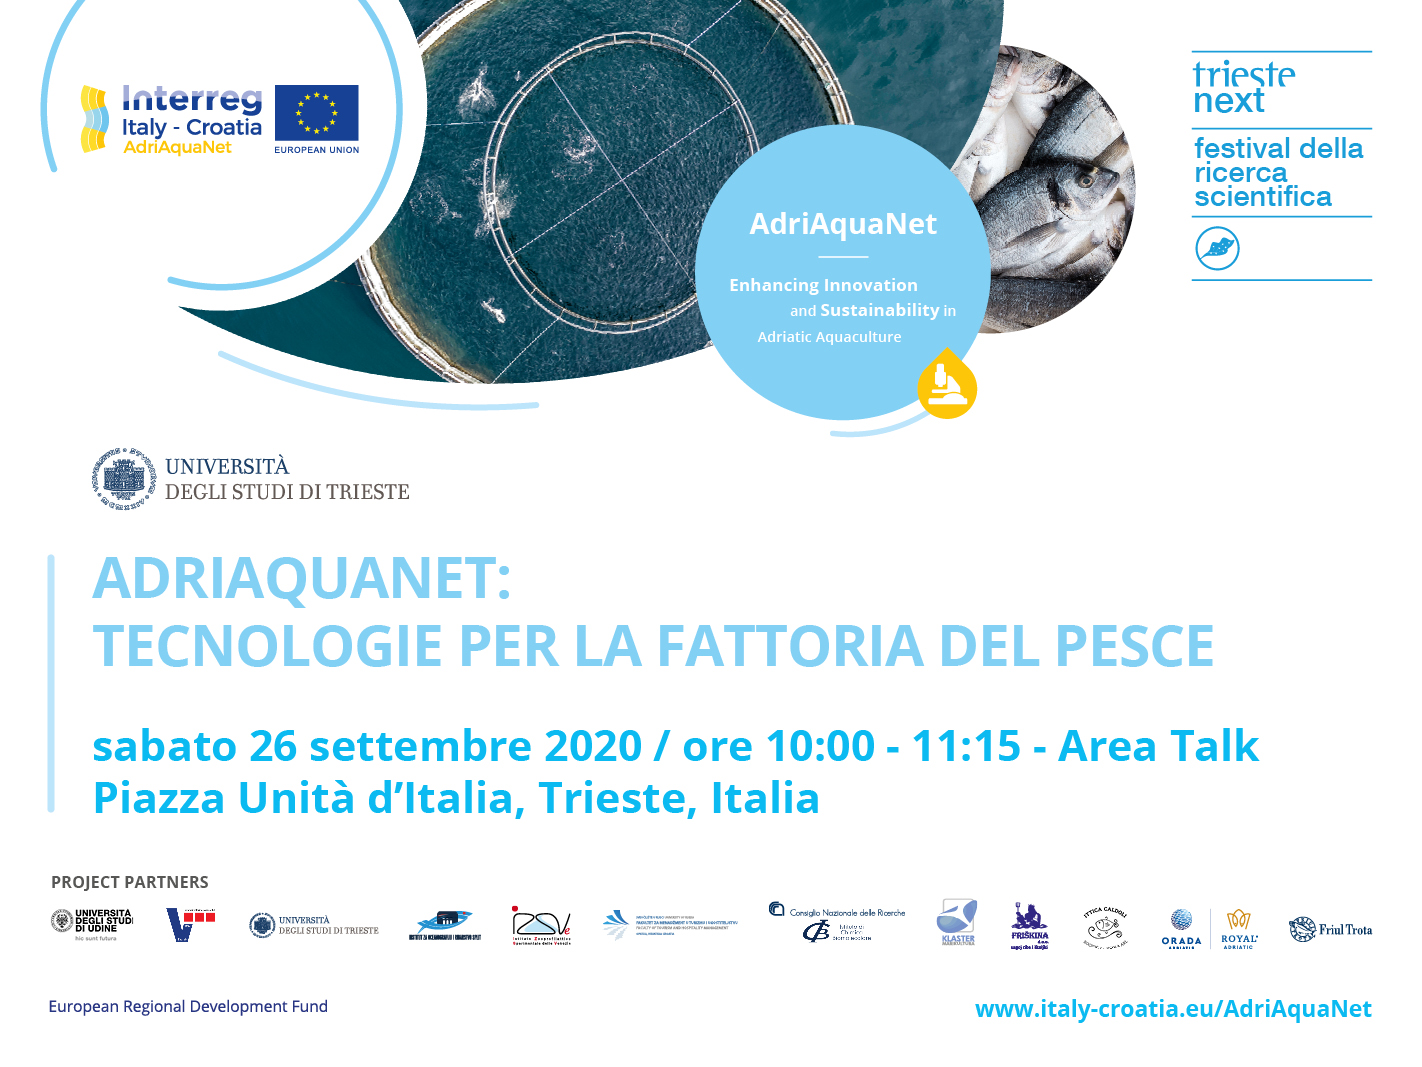 ADRIAQUANET - TECHNOLOGIES FOR THE FISH FARM AT TRIESTE NEXT 2020